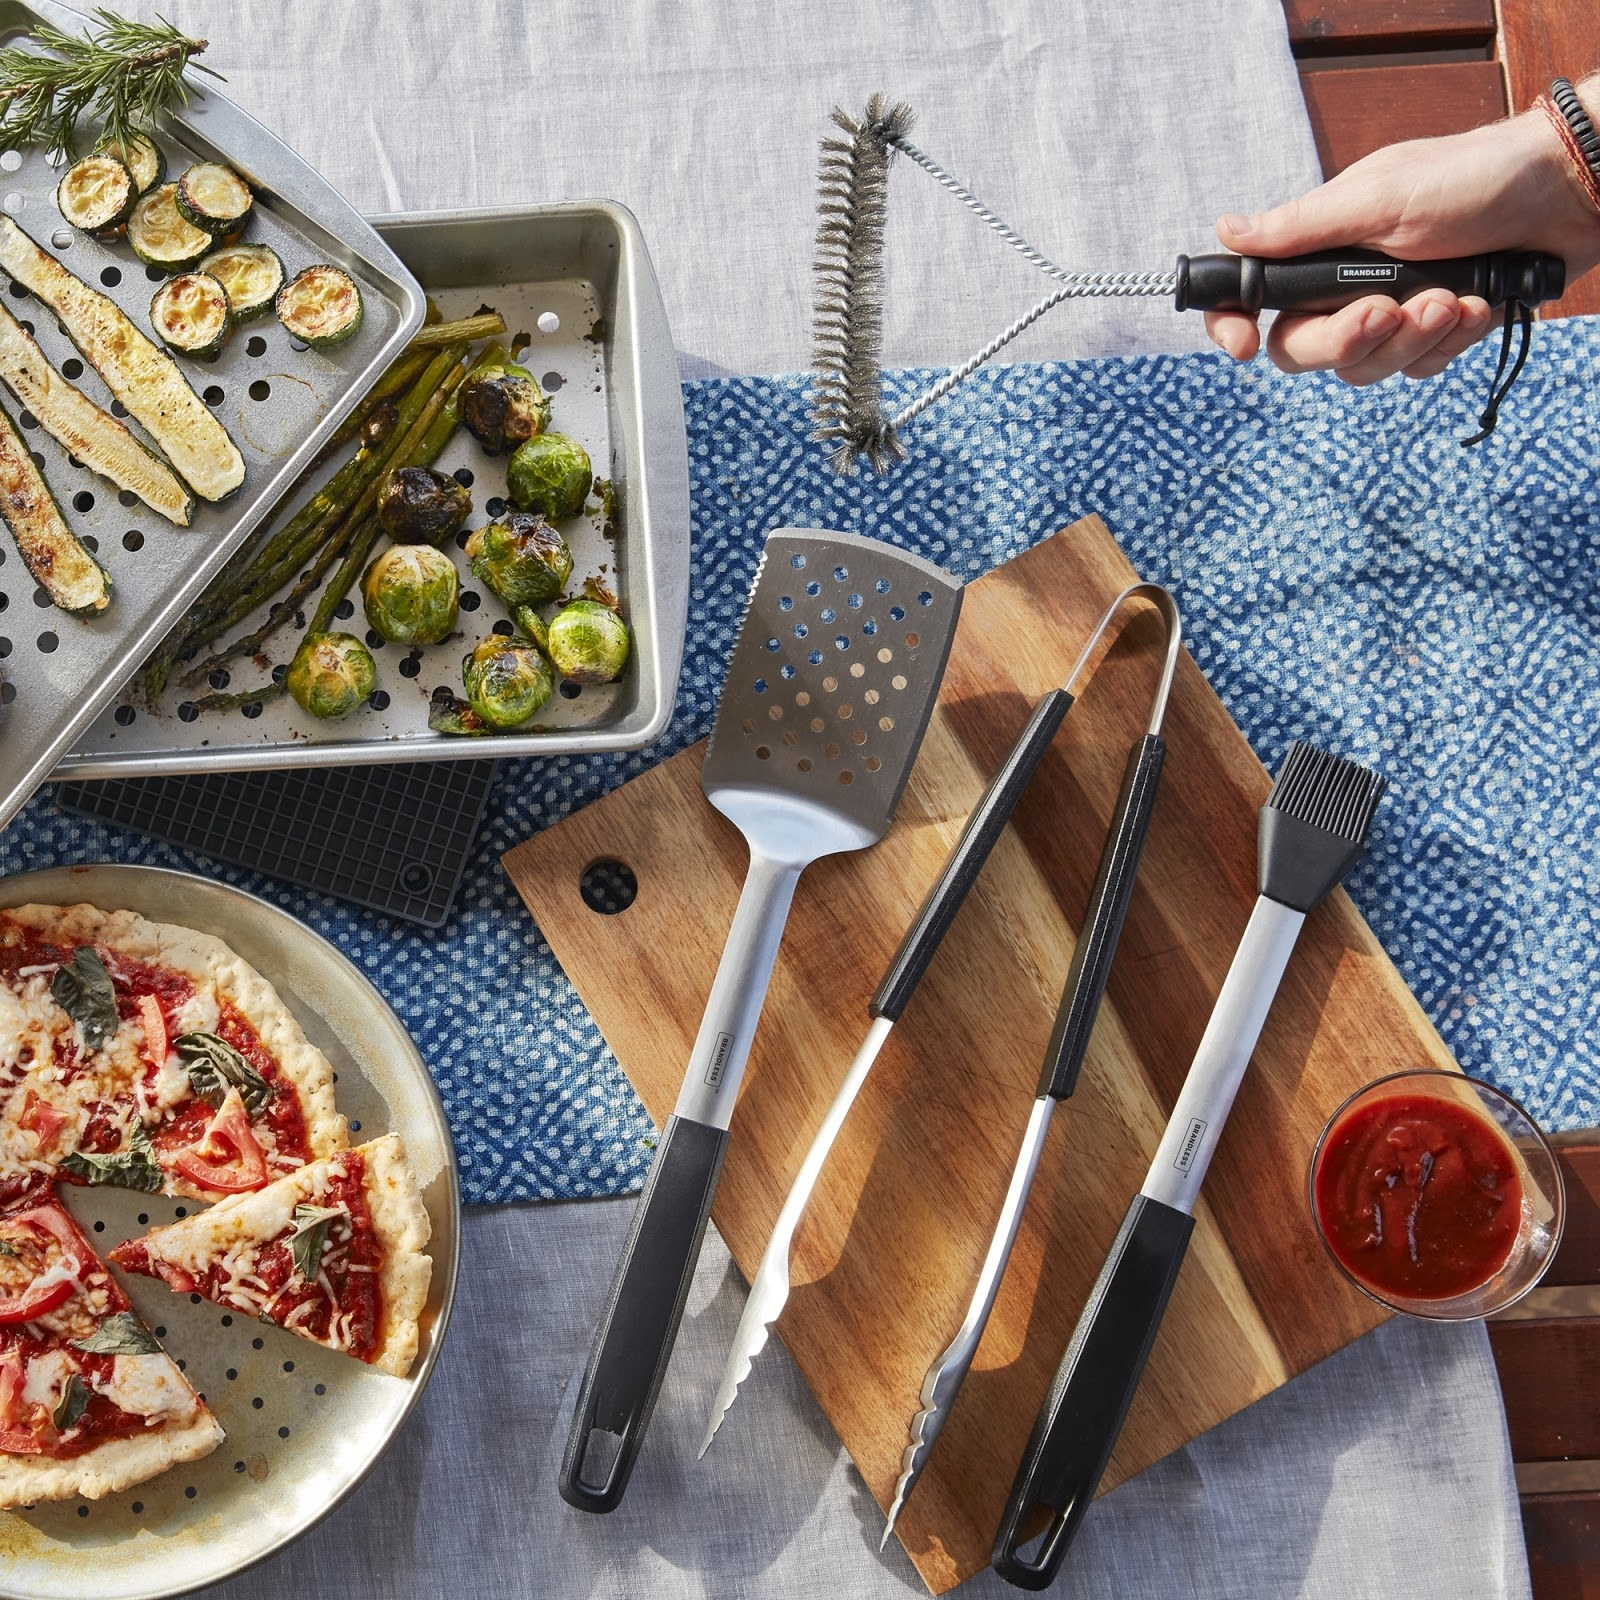 The bundle, including grilling tools and trays